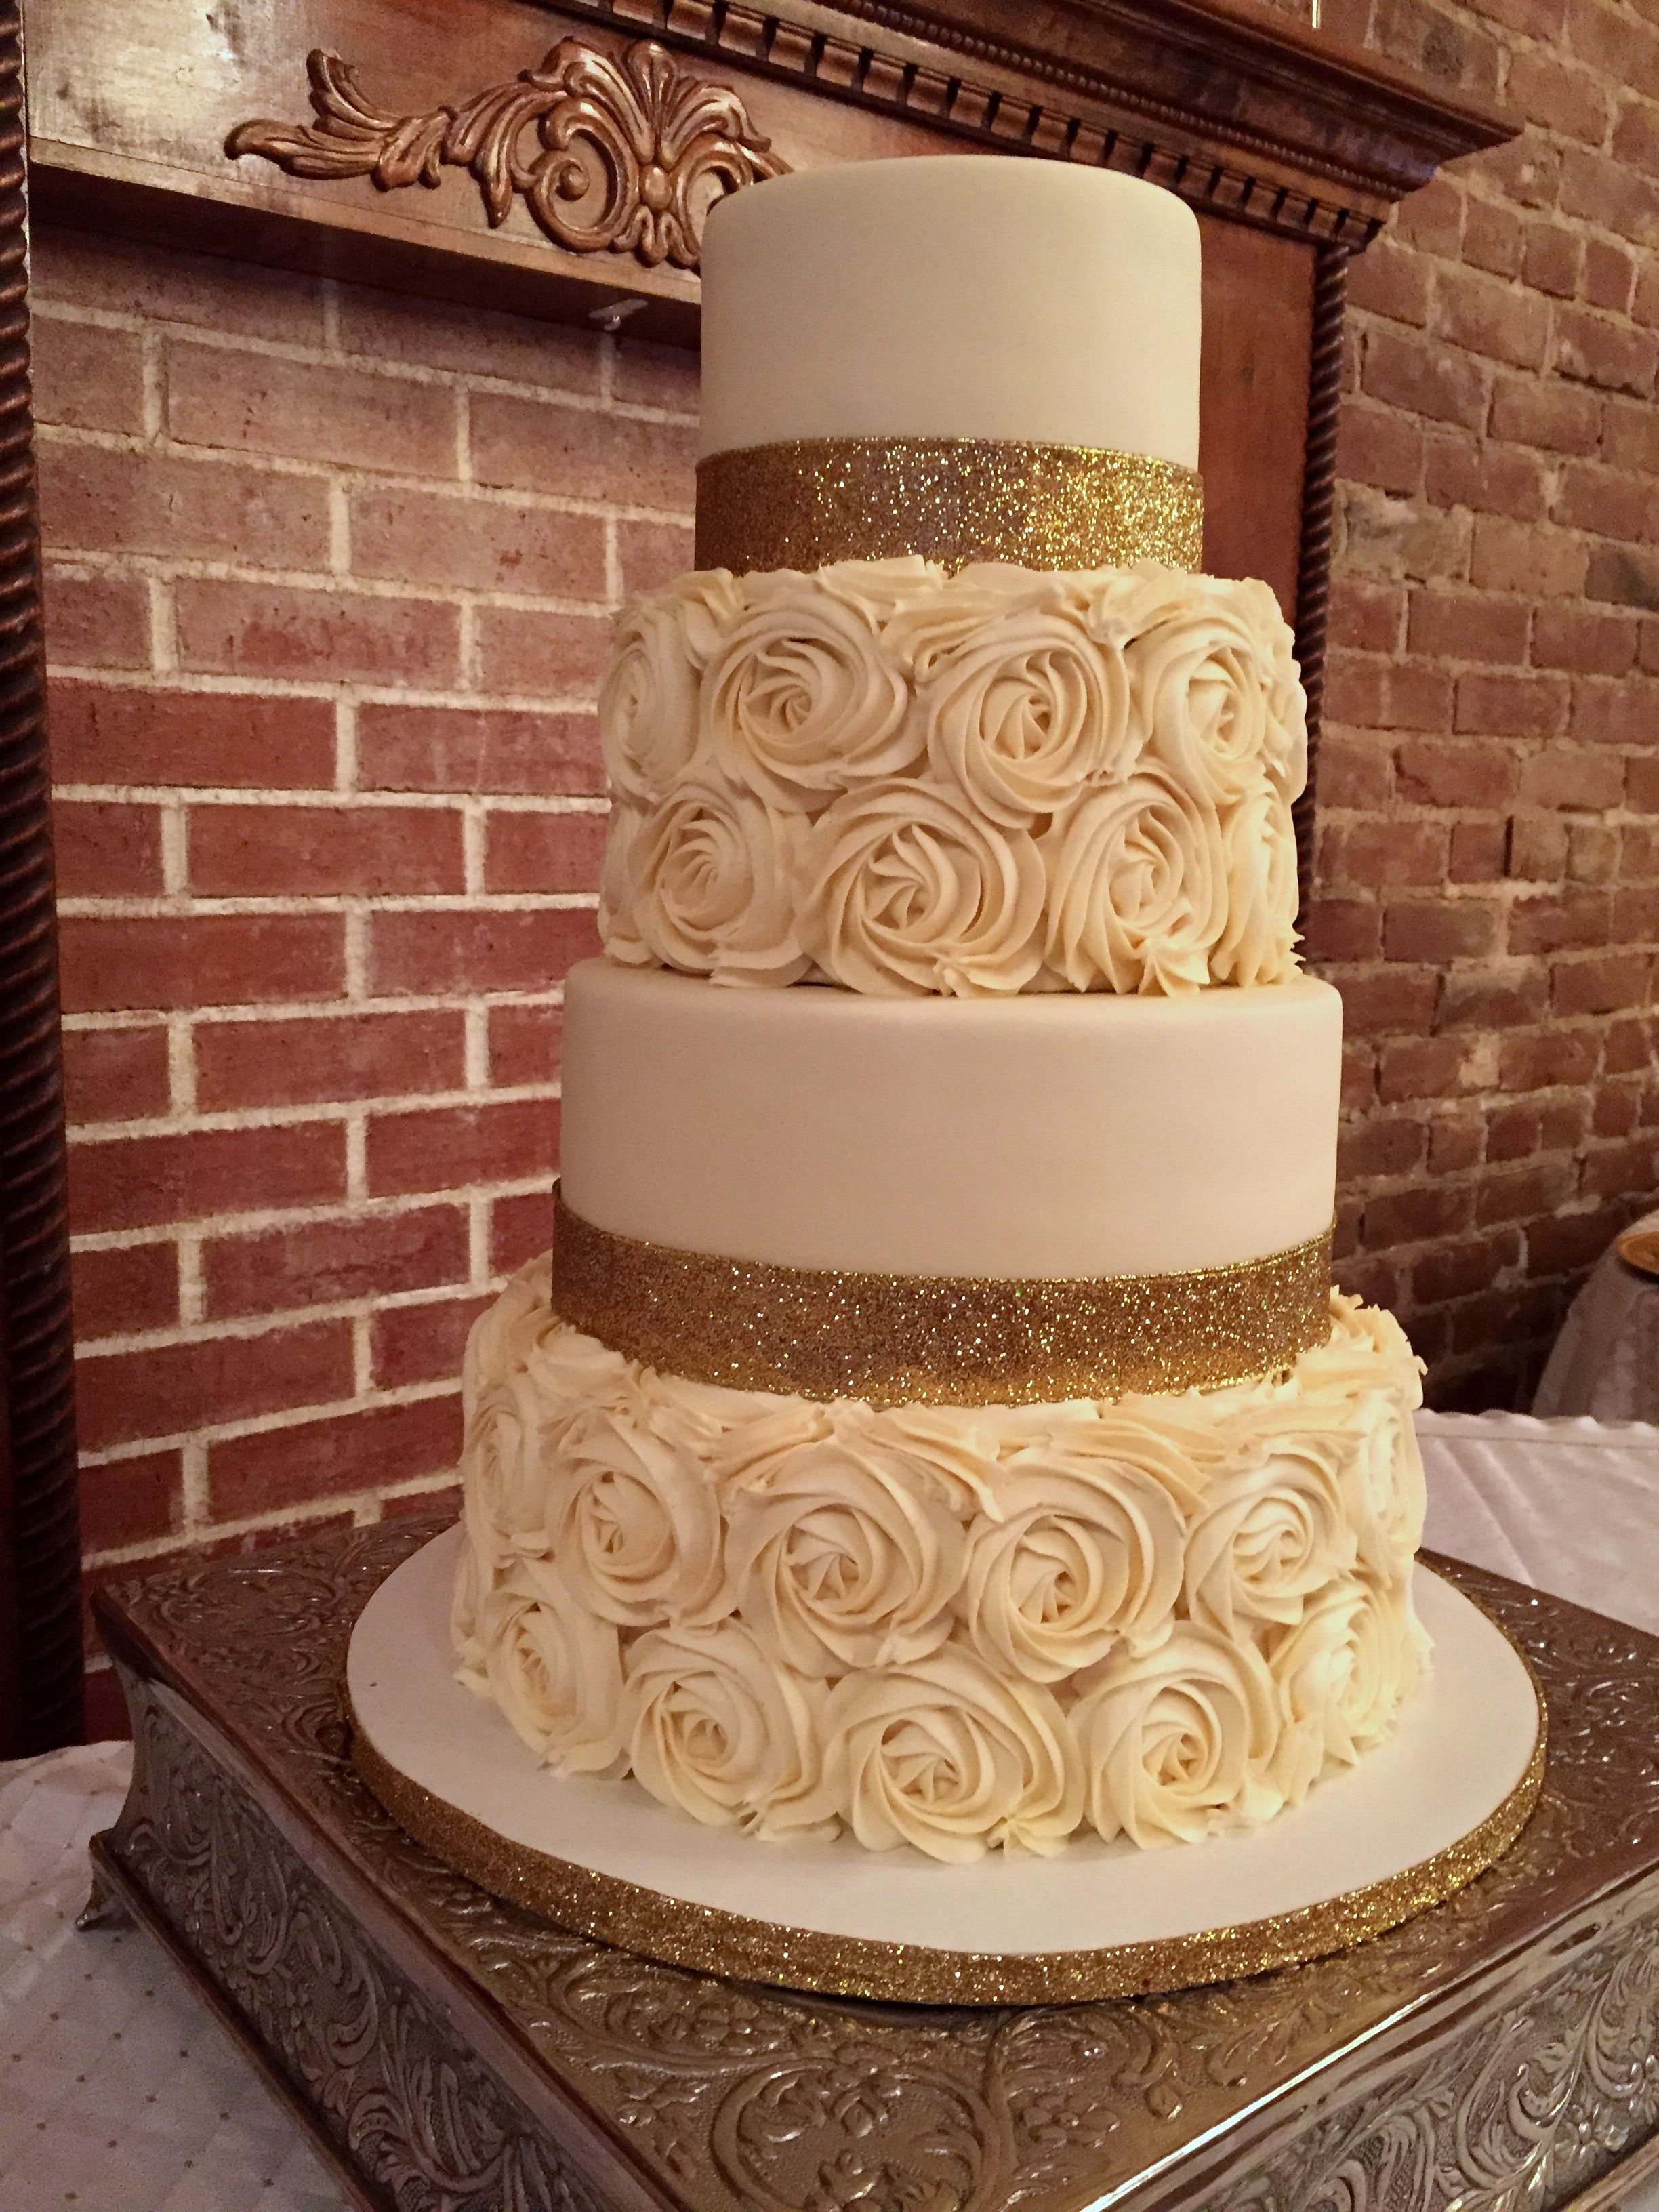 Rosette Wedding Cake Made With Couture Fondant And Ercream Icing